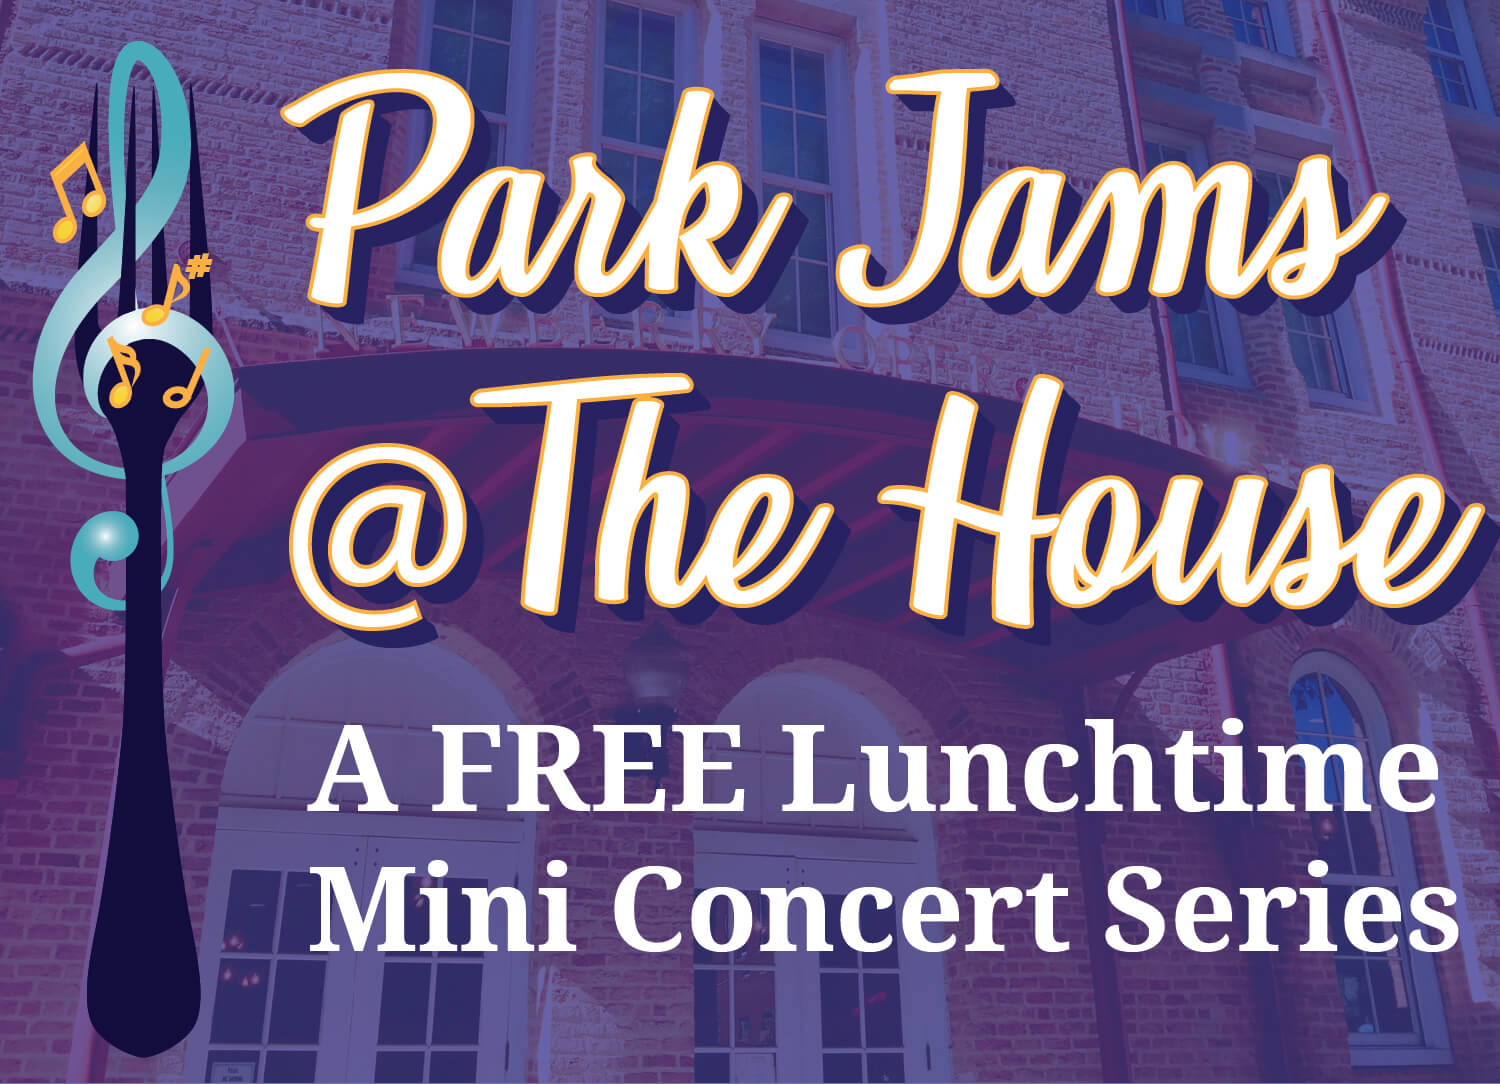 FREE Lunchtime Park Jams @ The House